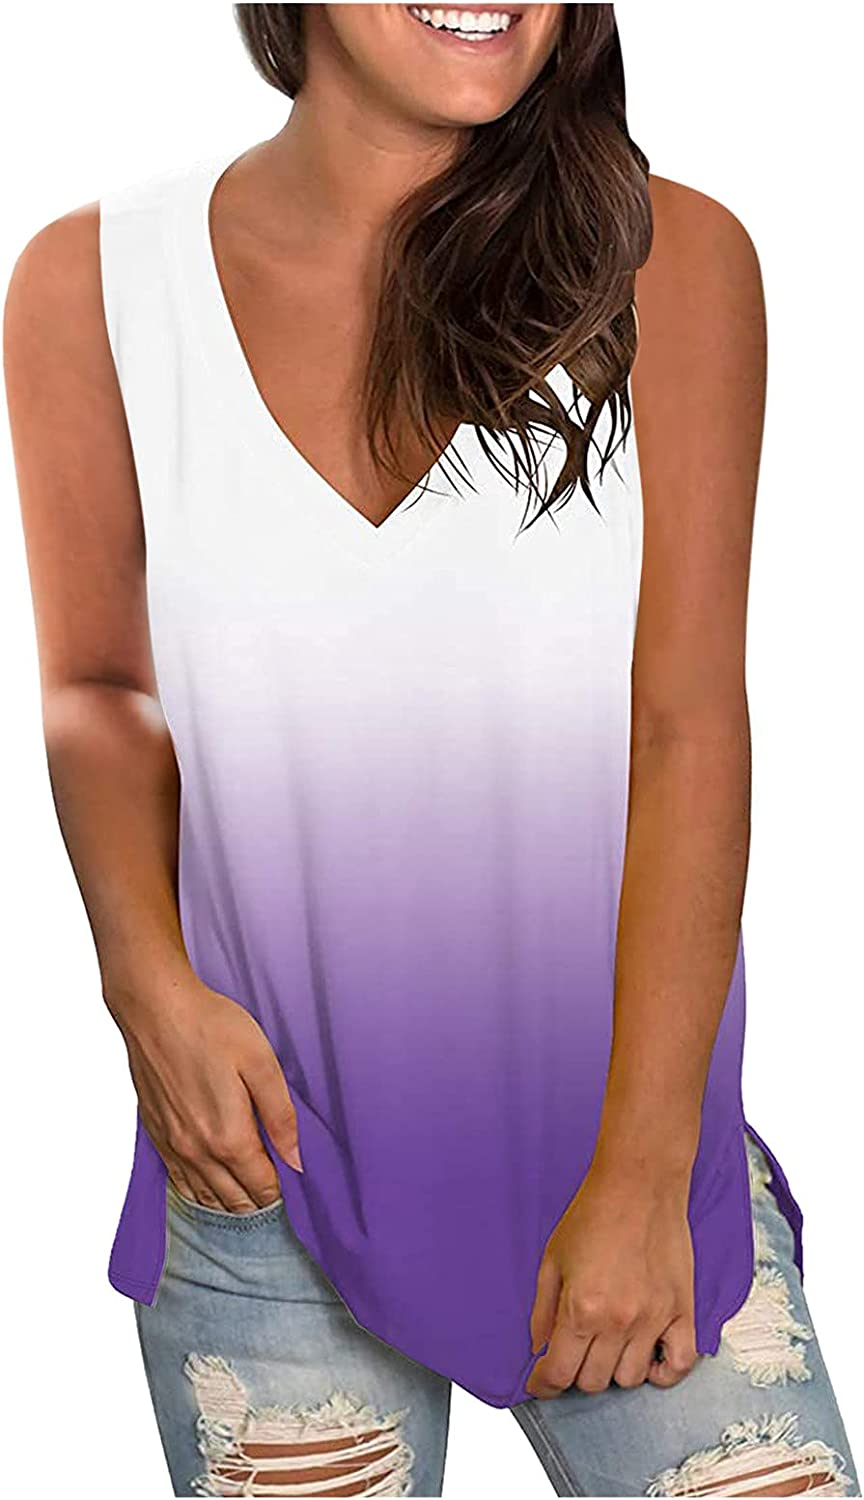 BEIBEIA Women's Casual Racerback Tank Tops,Summer V-Neck Gradient Sleeveless Vest Fashion Top Tunic Vest Tshirt Blouse